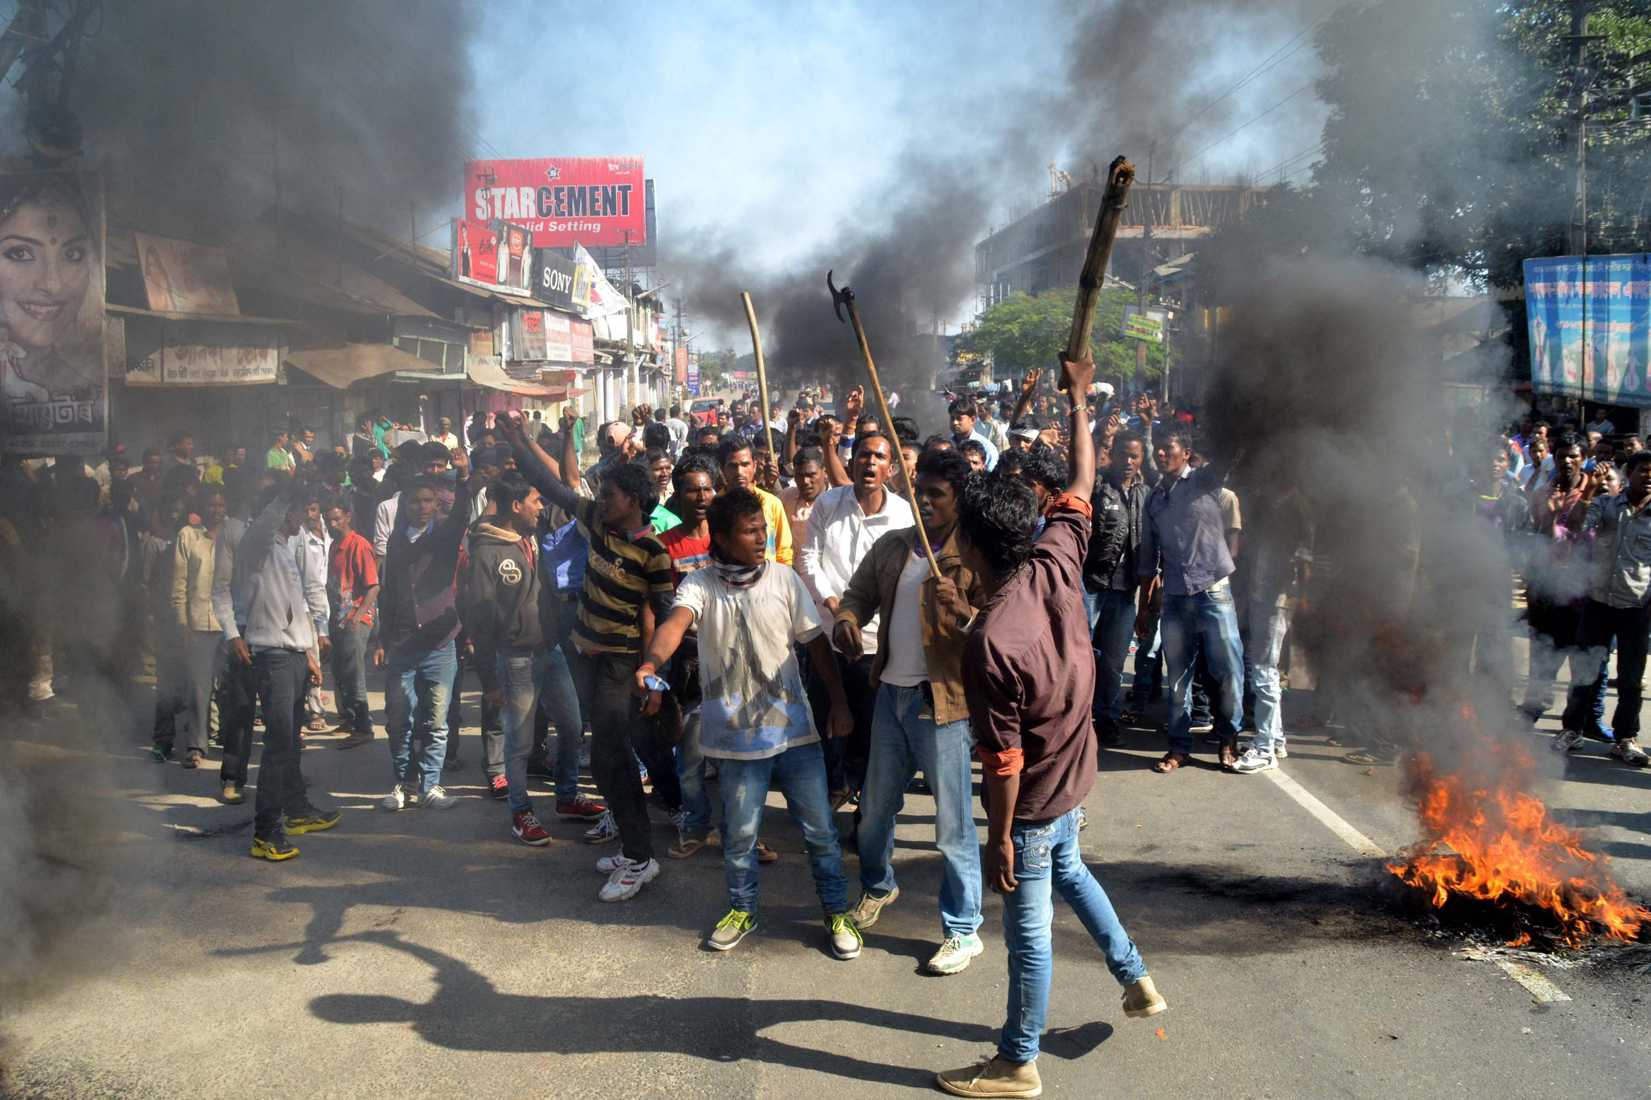 Activists of the Assam Tea Tribes Student Association (ATTSA) shout slogans as they block the road with burning tyres during a protest against attacks on villagers by militants in four different locations, at Biswanath Chariali in the Sonitpur district of northeastern Assam state on December 24, 2014